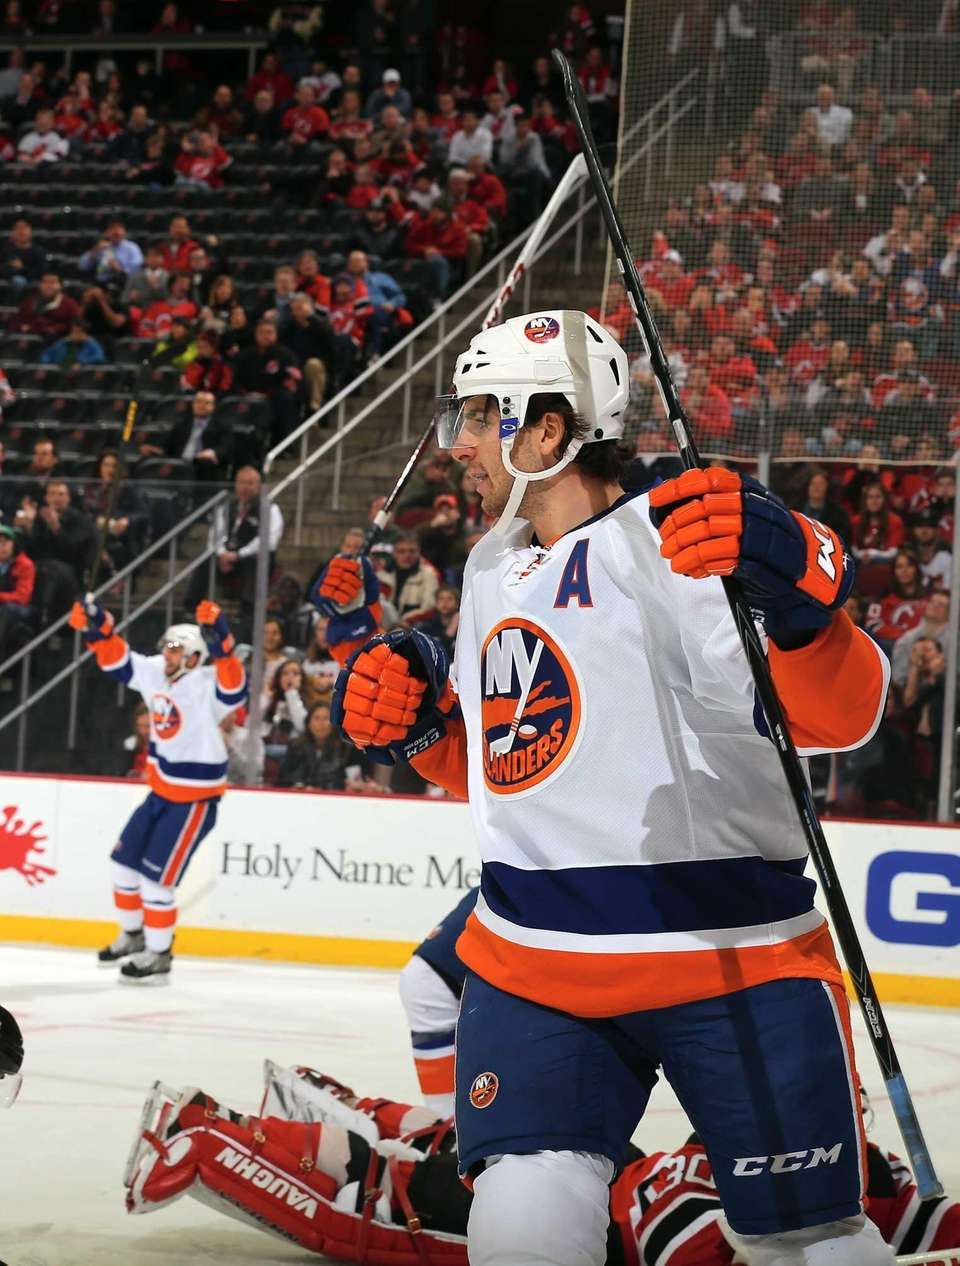 John Tavares celebrates his goal in the first